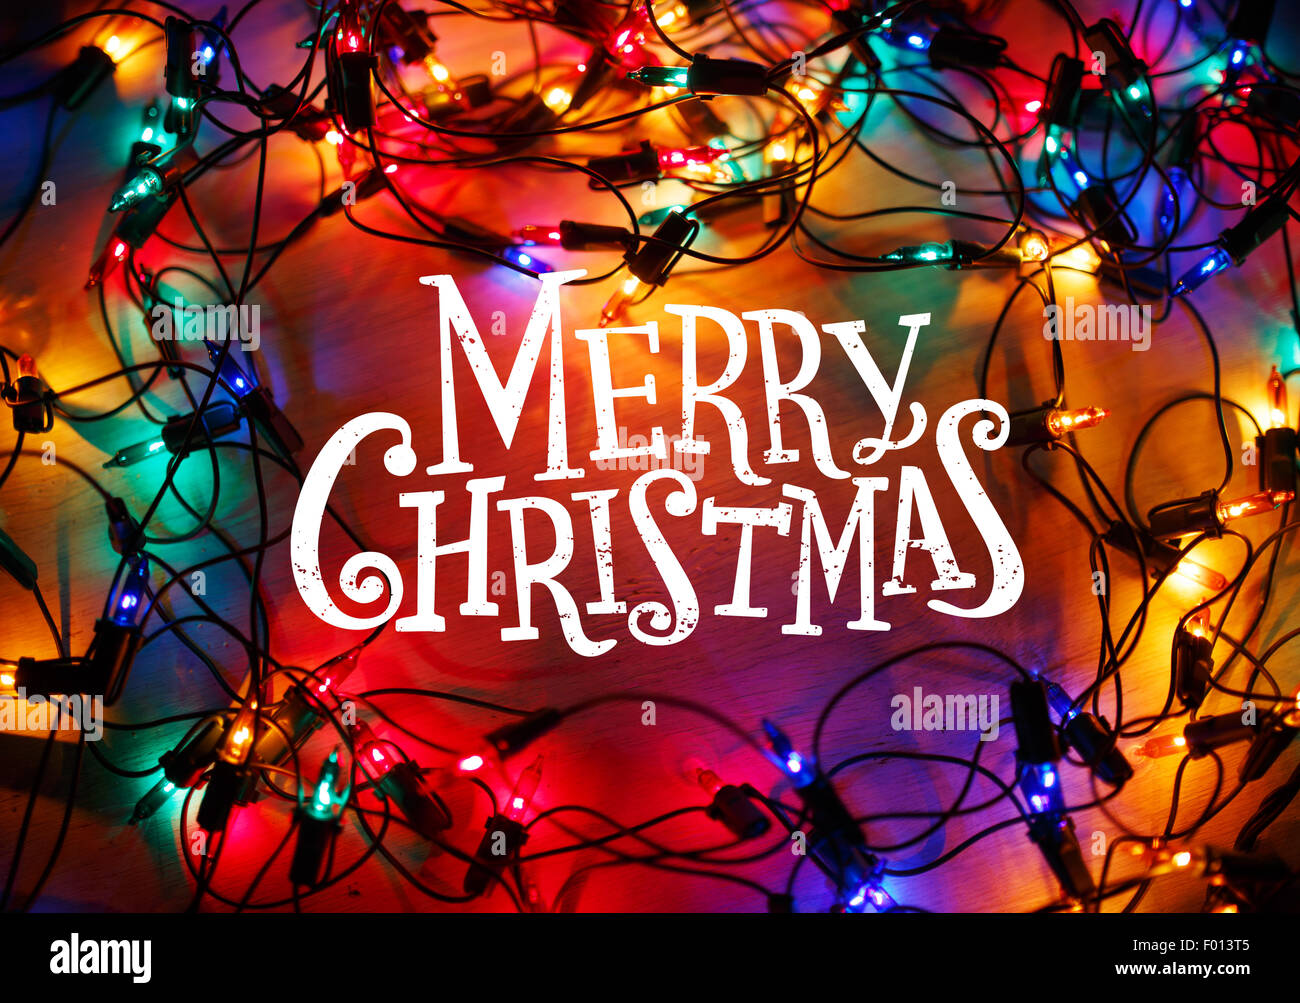 christmas lights frame on wood background with merry christmas lettering stock image - Christmas Lights Frame